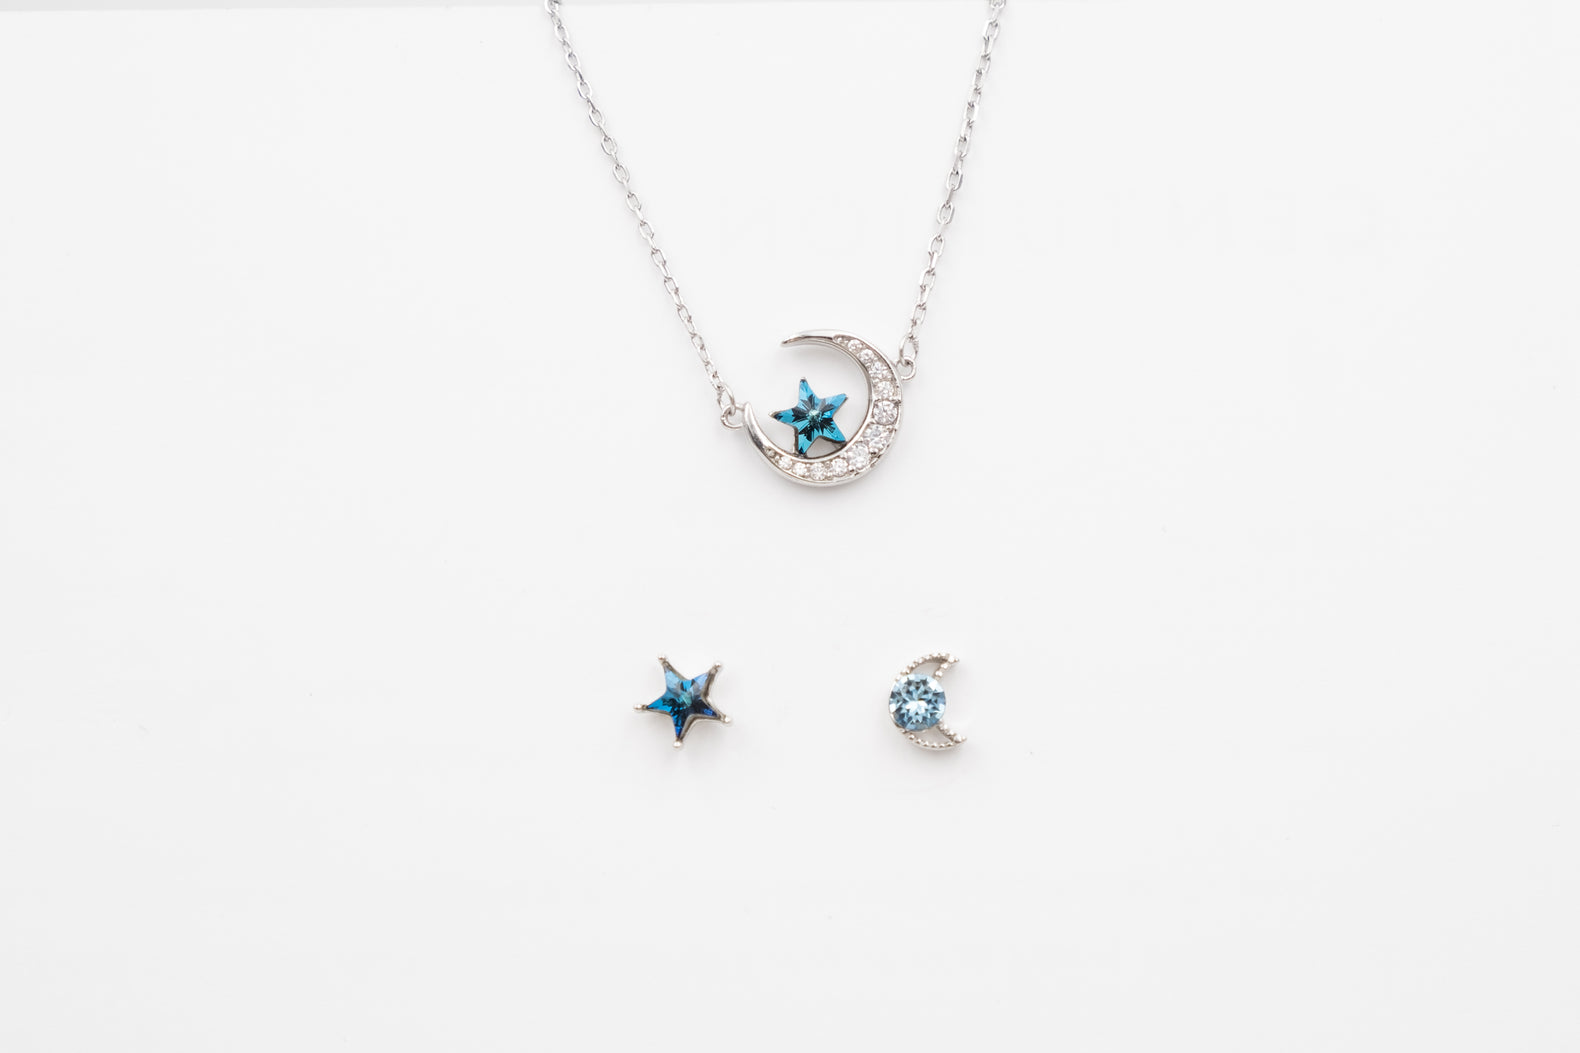 Blue Star & Moon Necklace